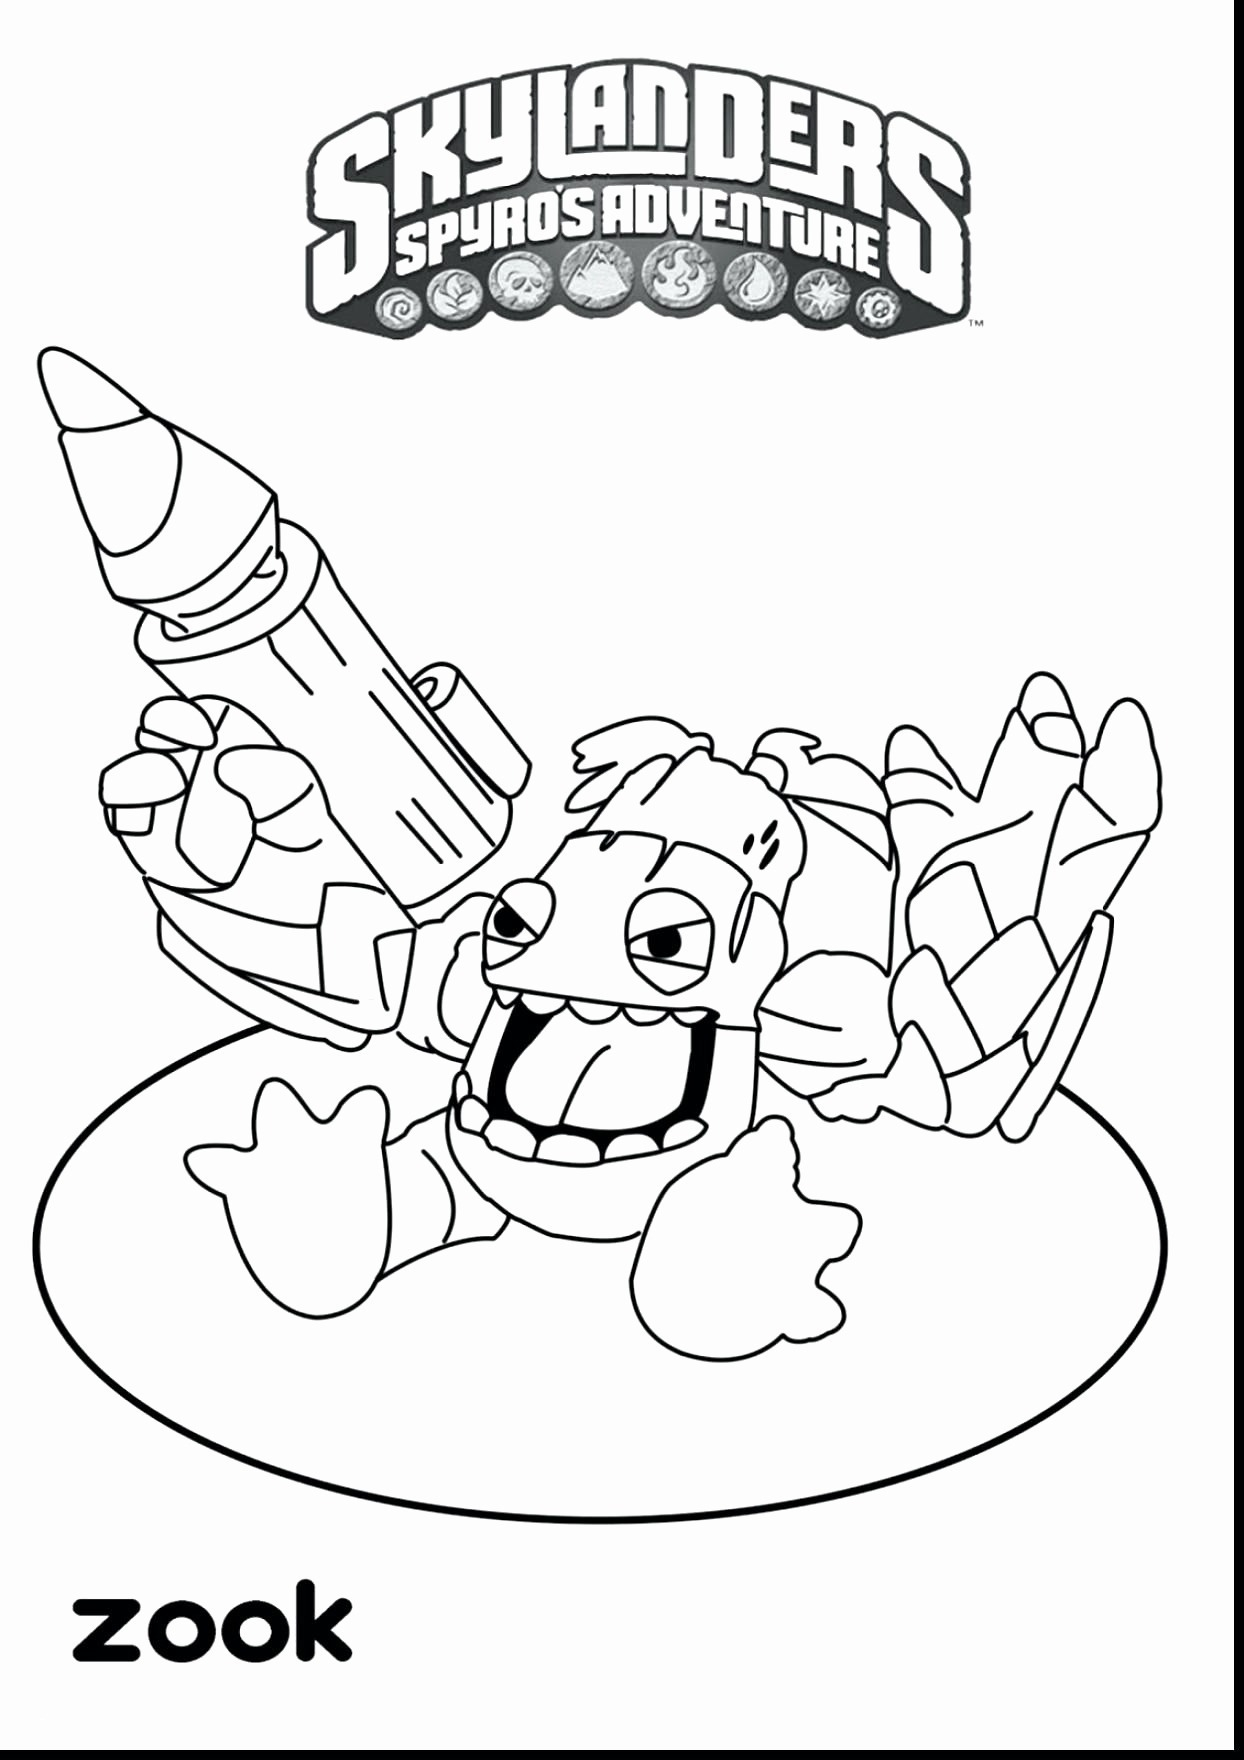 Halloween Candy Coloring Pages  Gallery 10p - To print for your project